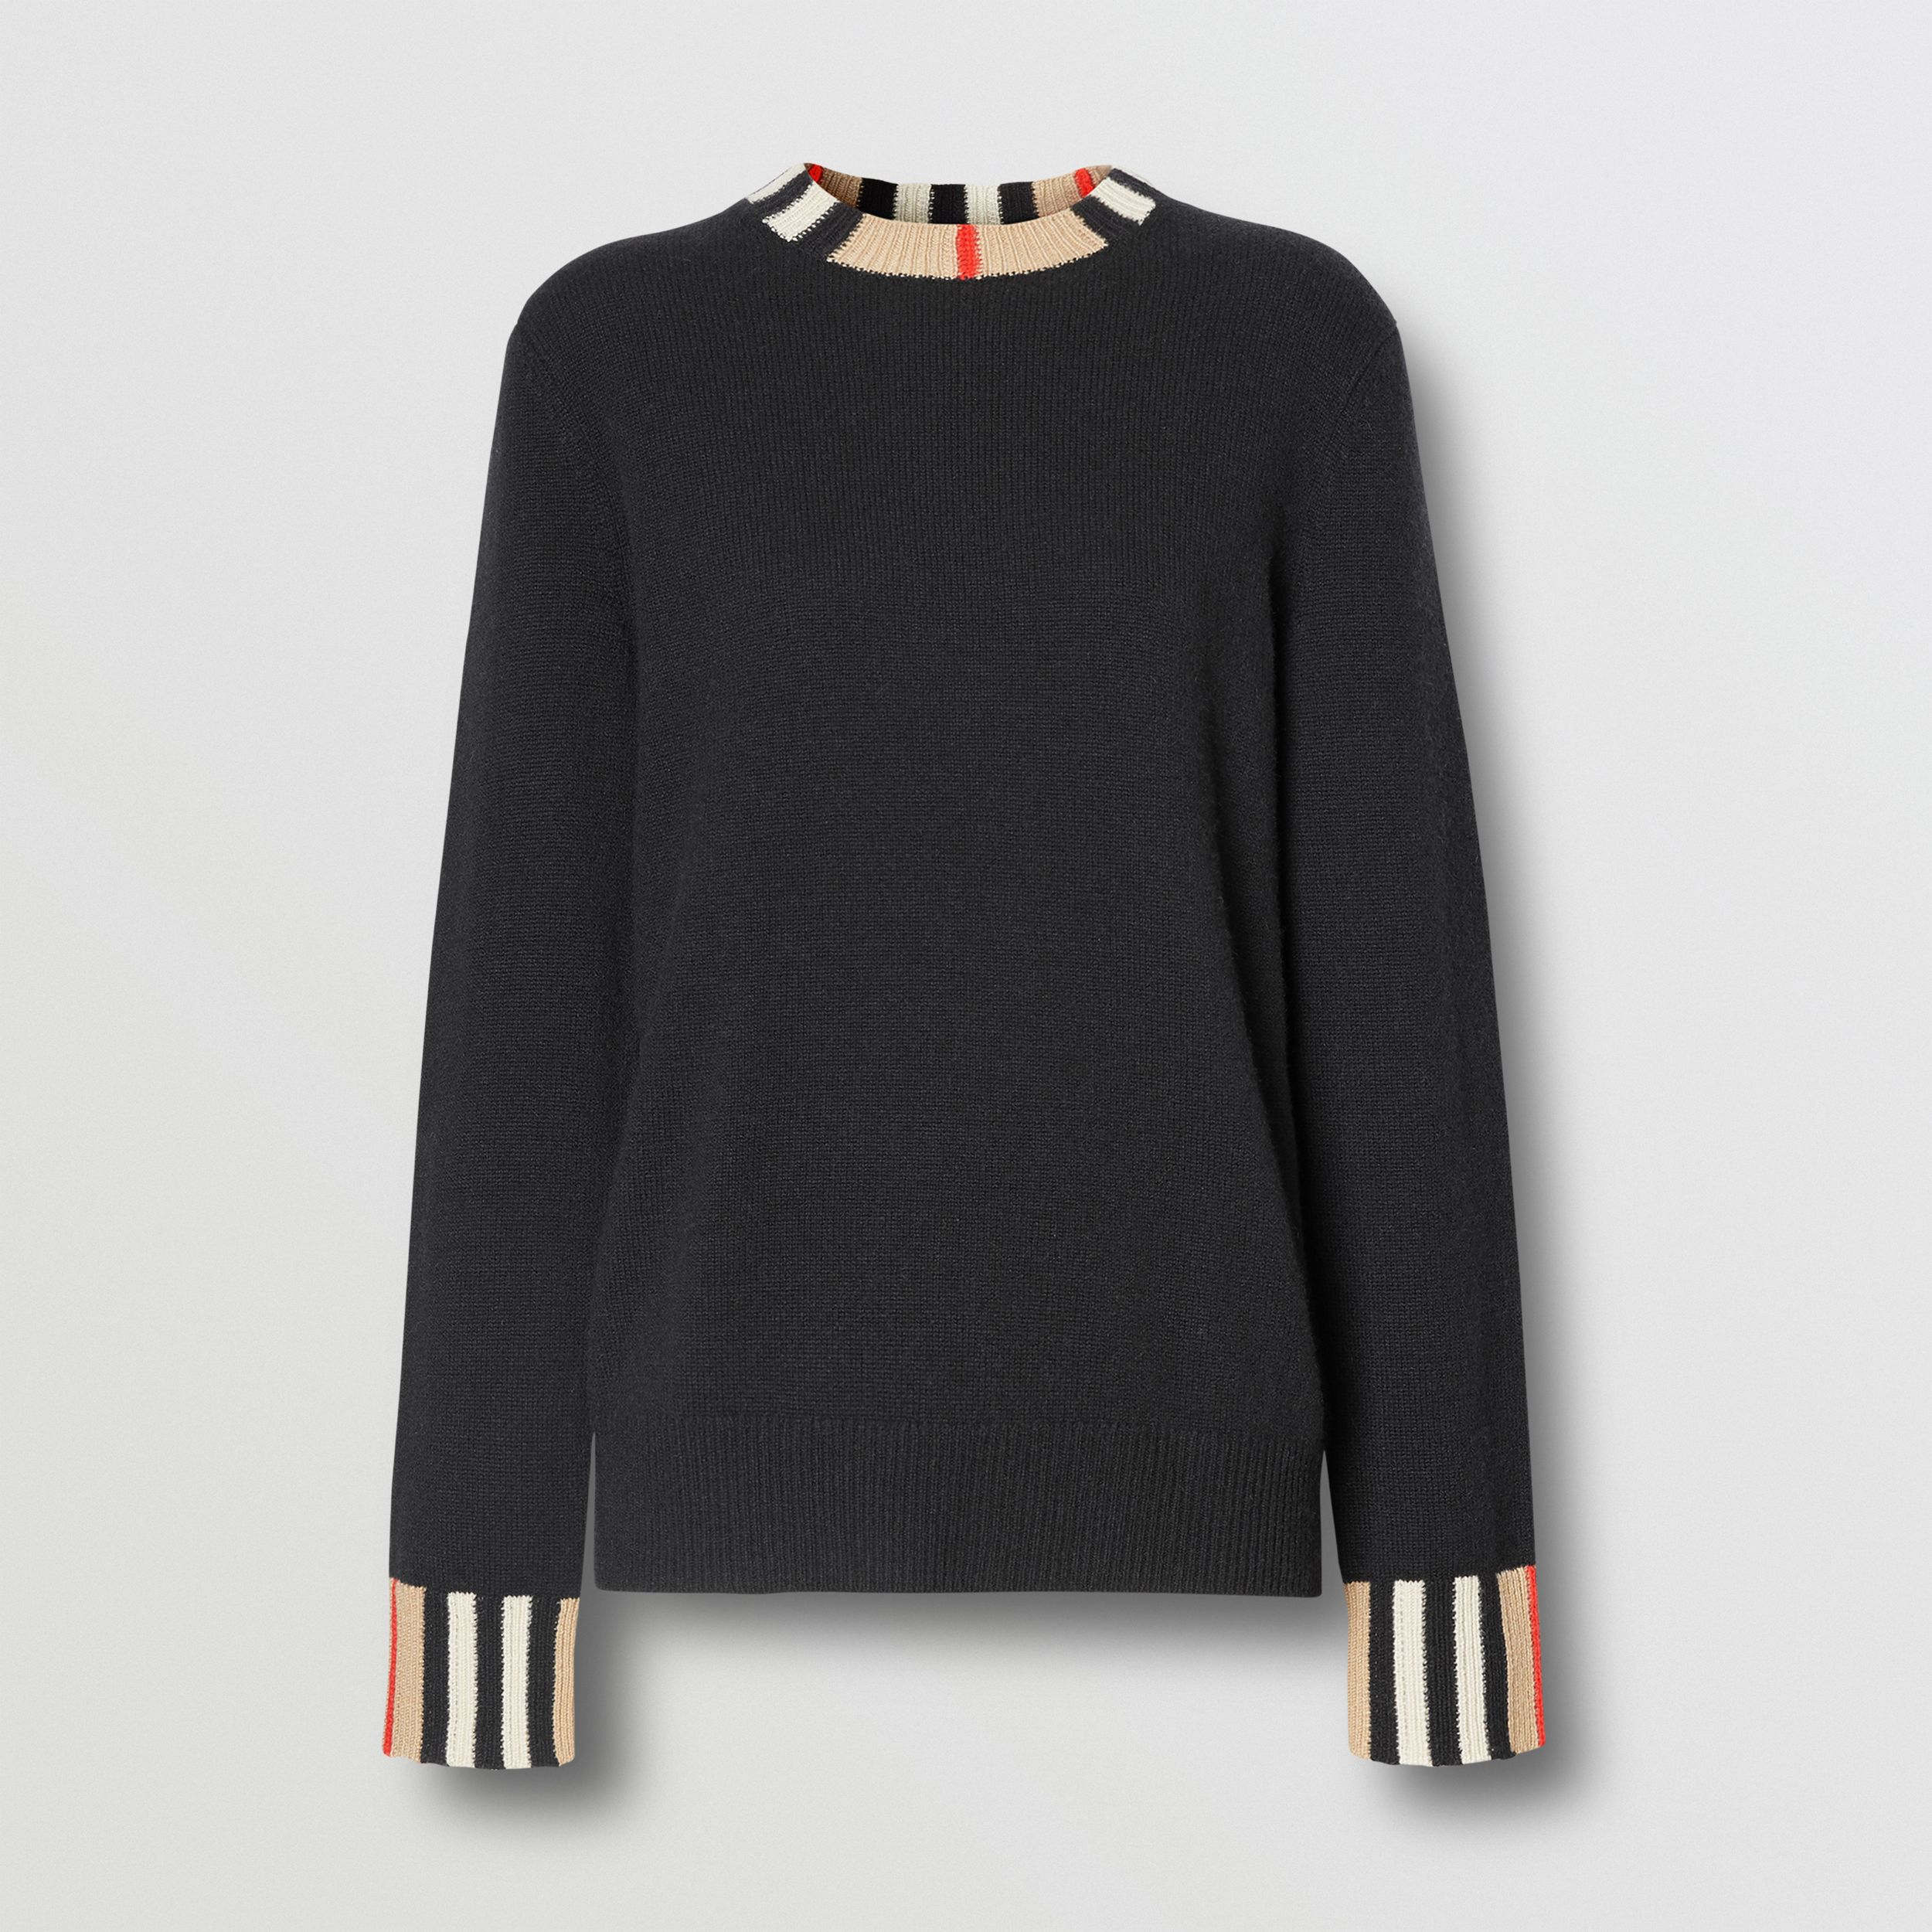 Icon Stripe Trim Cashmere Sweater in Black - Women | Burberry - 4